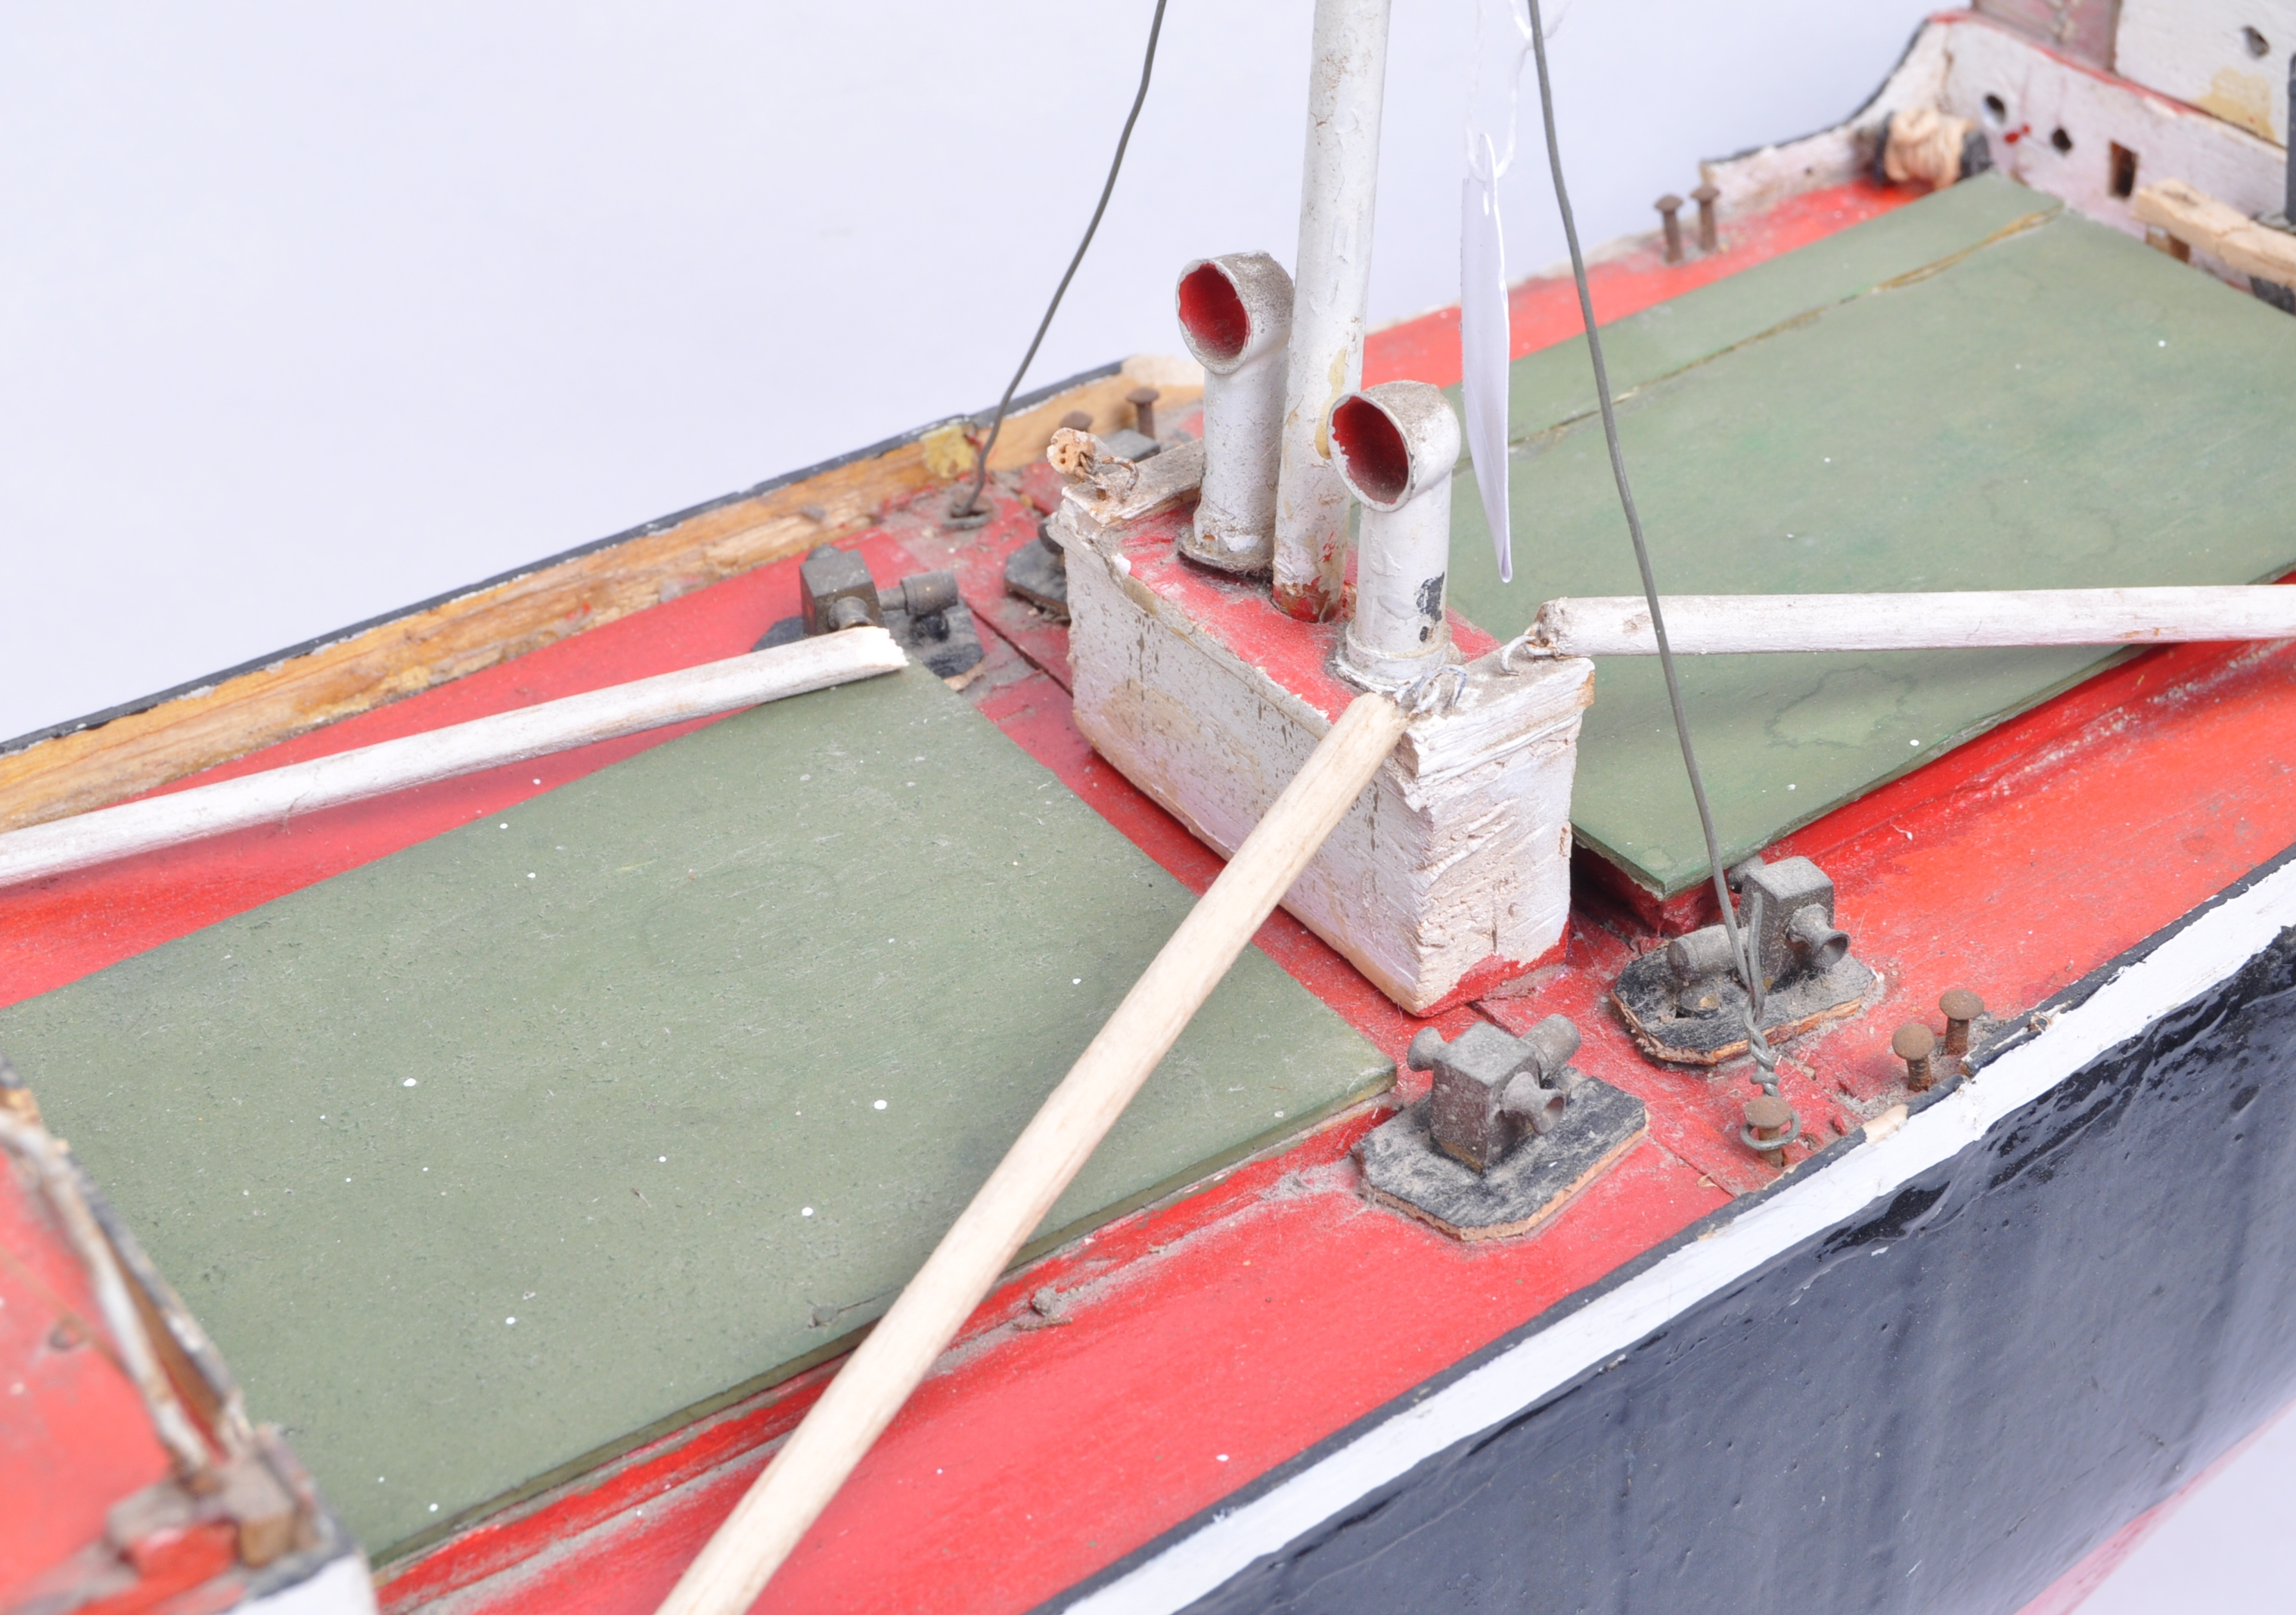 SHIPPING - RADIO CONTROLLED SCALE MODEL ' FORT INDUS ' CARGO SHIP - Image 6 of 11